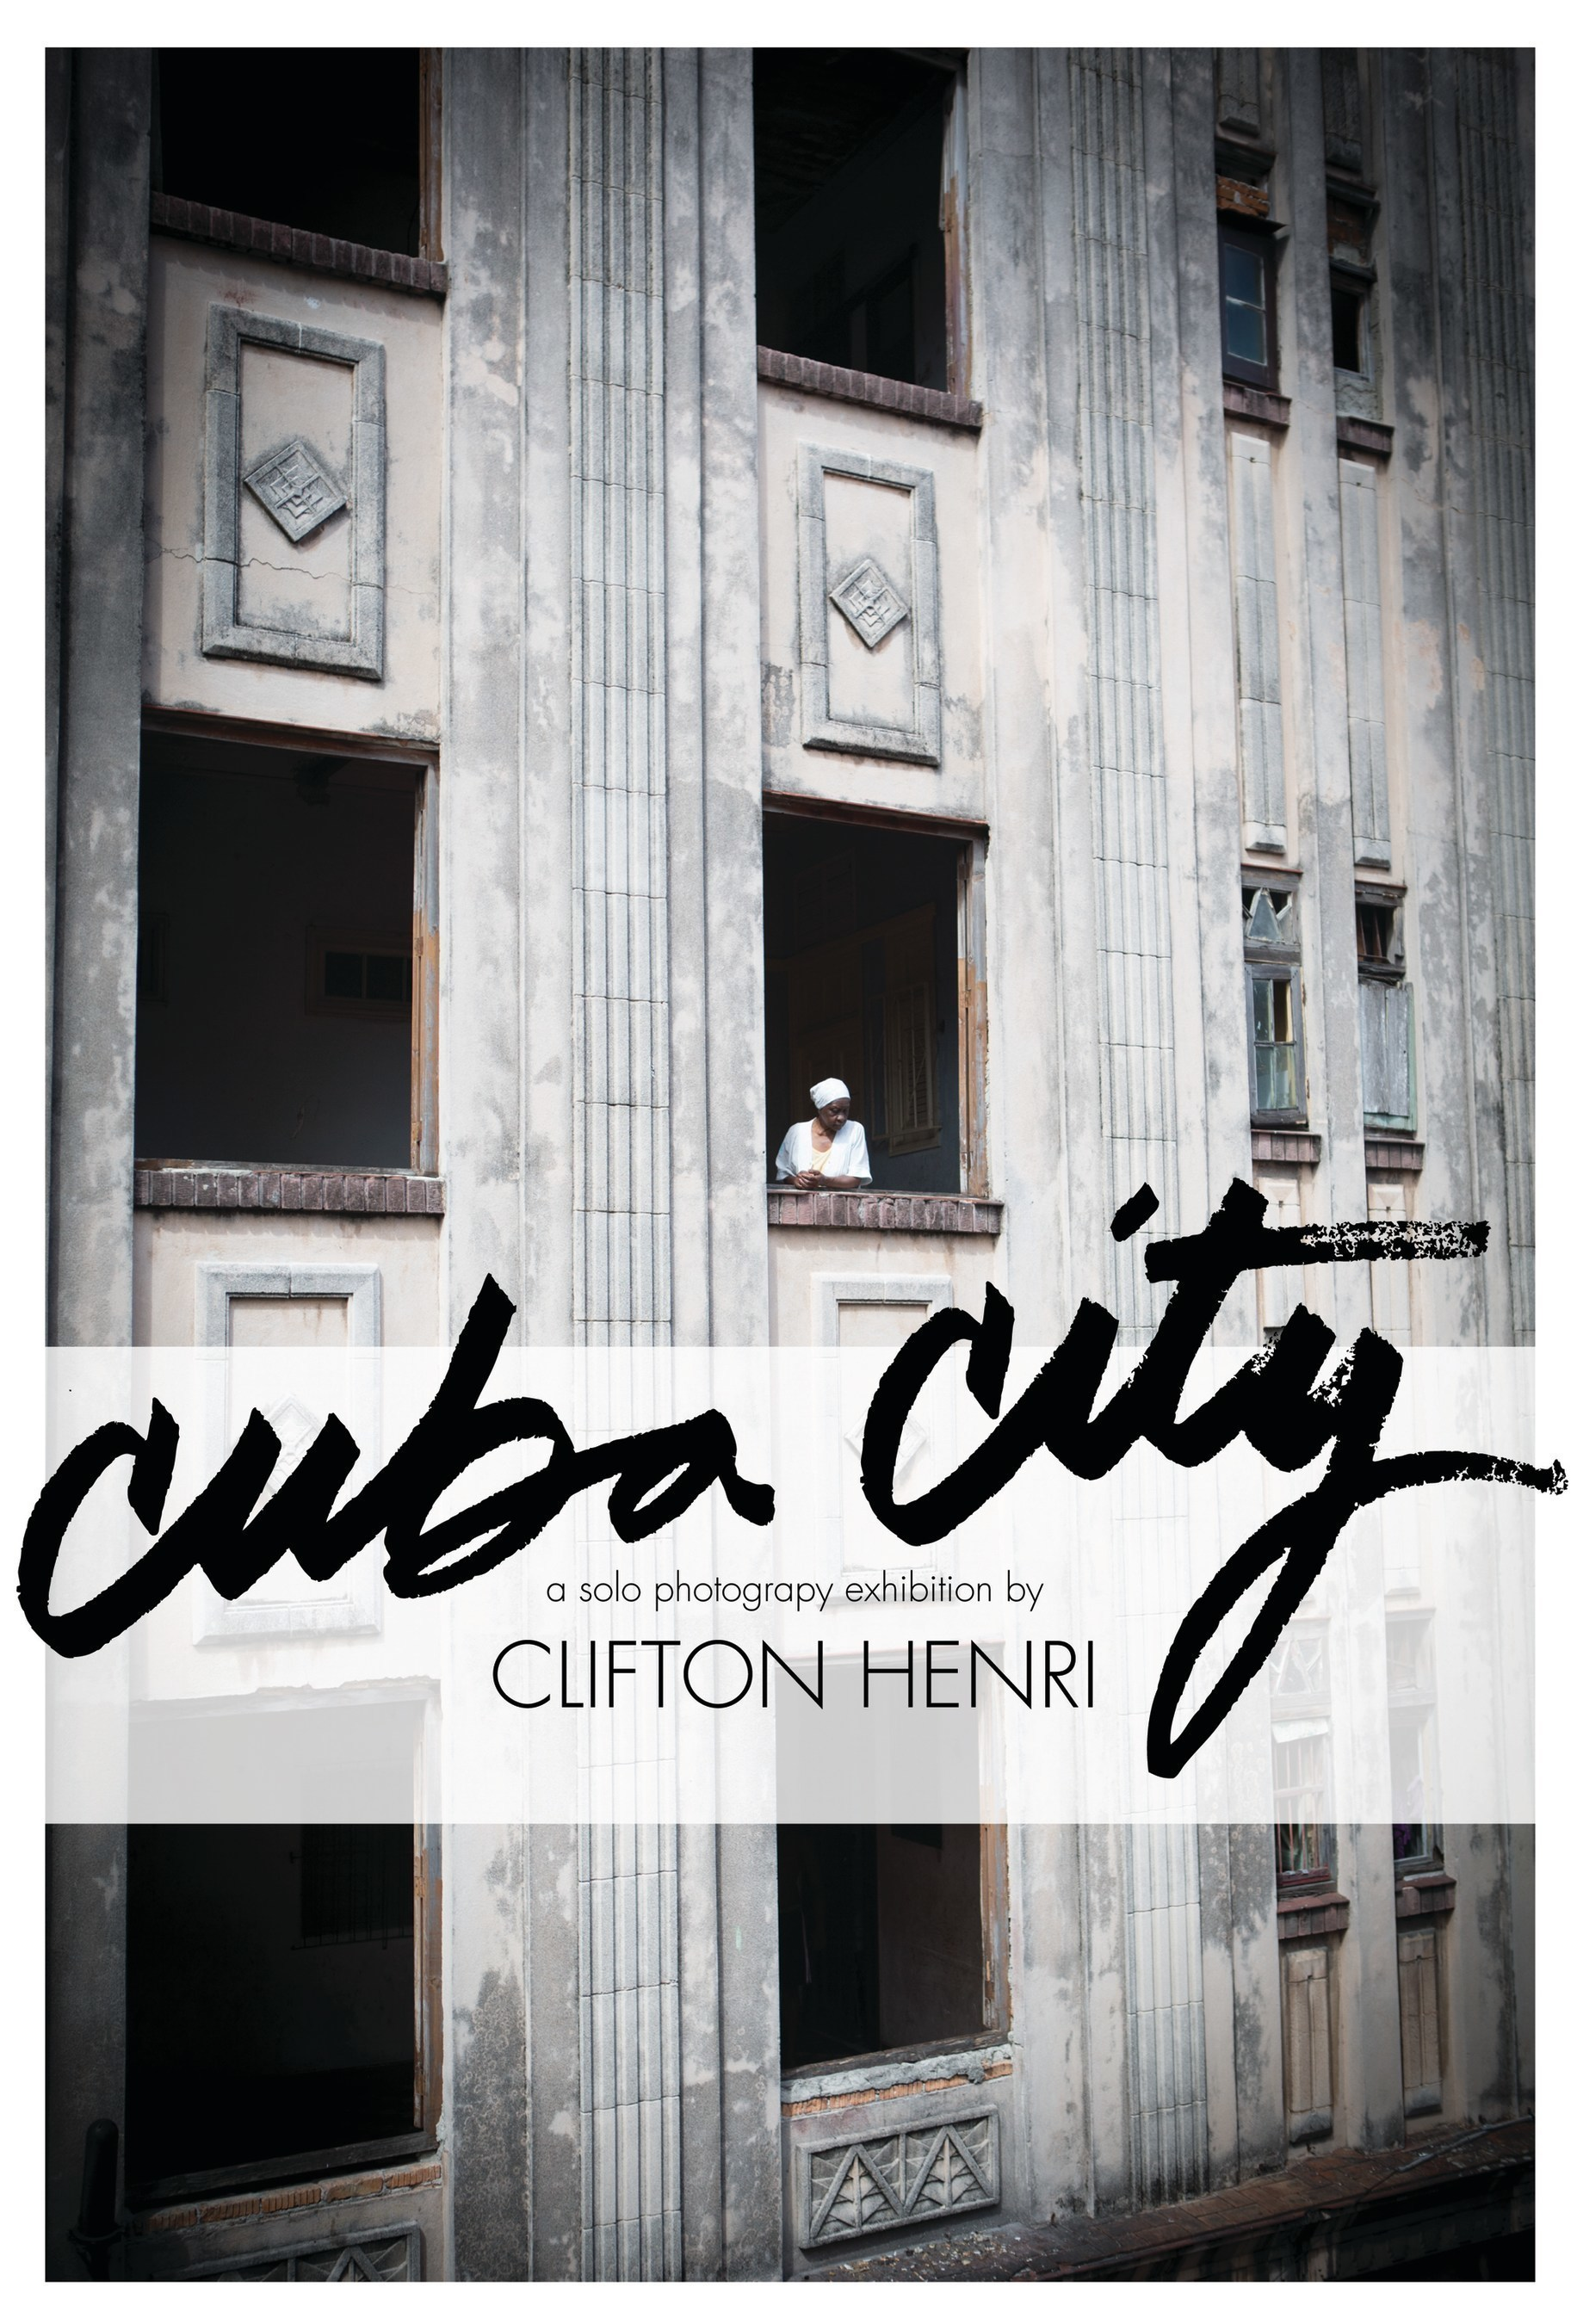 Award winning photographer Clifton Henri, will host his much anticipated first national show unveiling exclusive pieces that document his travels to and within Havana, Cuba.  The Cuba City collection will be unveiled at the Lacuna Artist Lofts in Chicago on Friday, November 20, 2015.